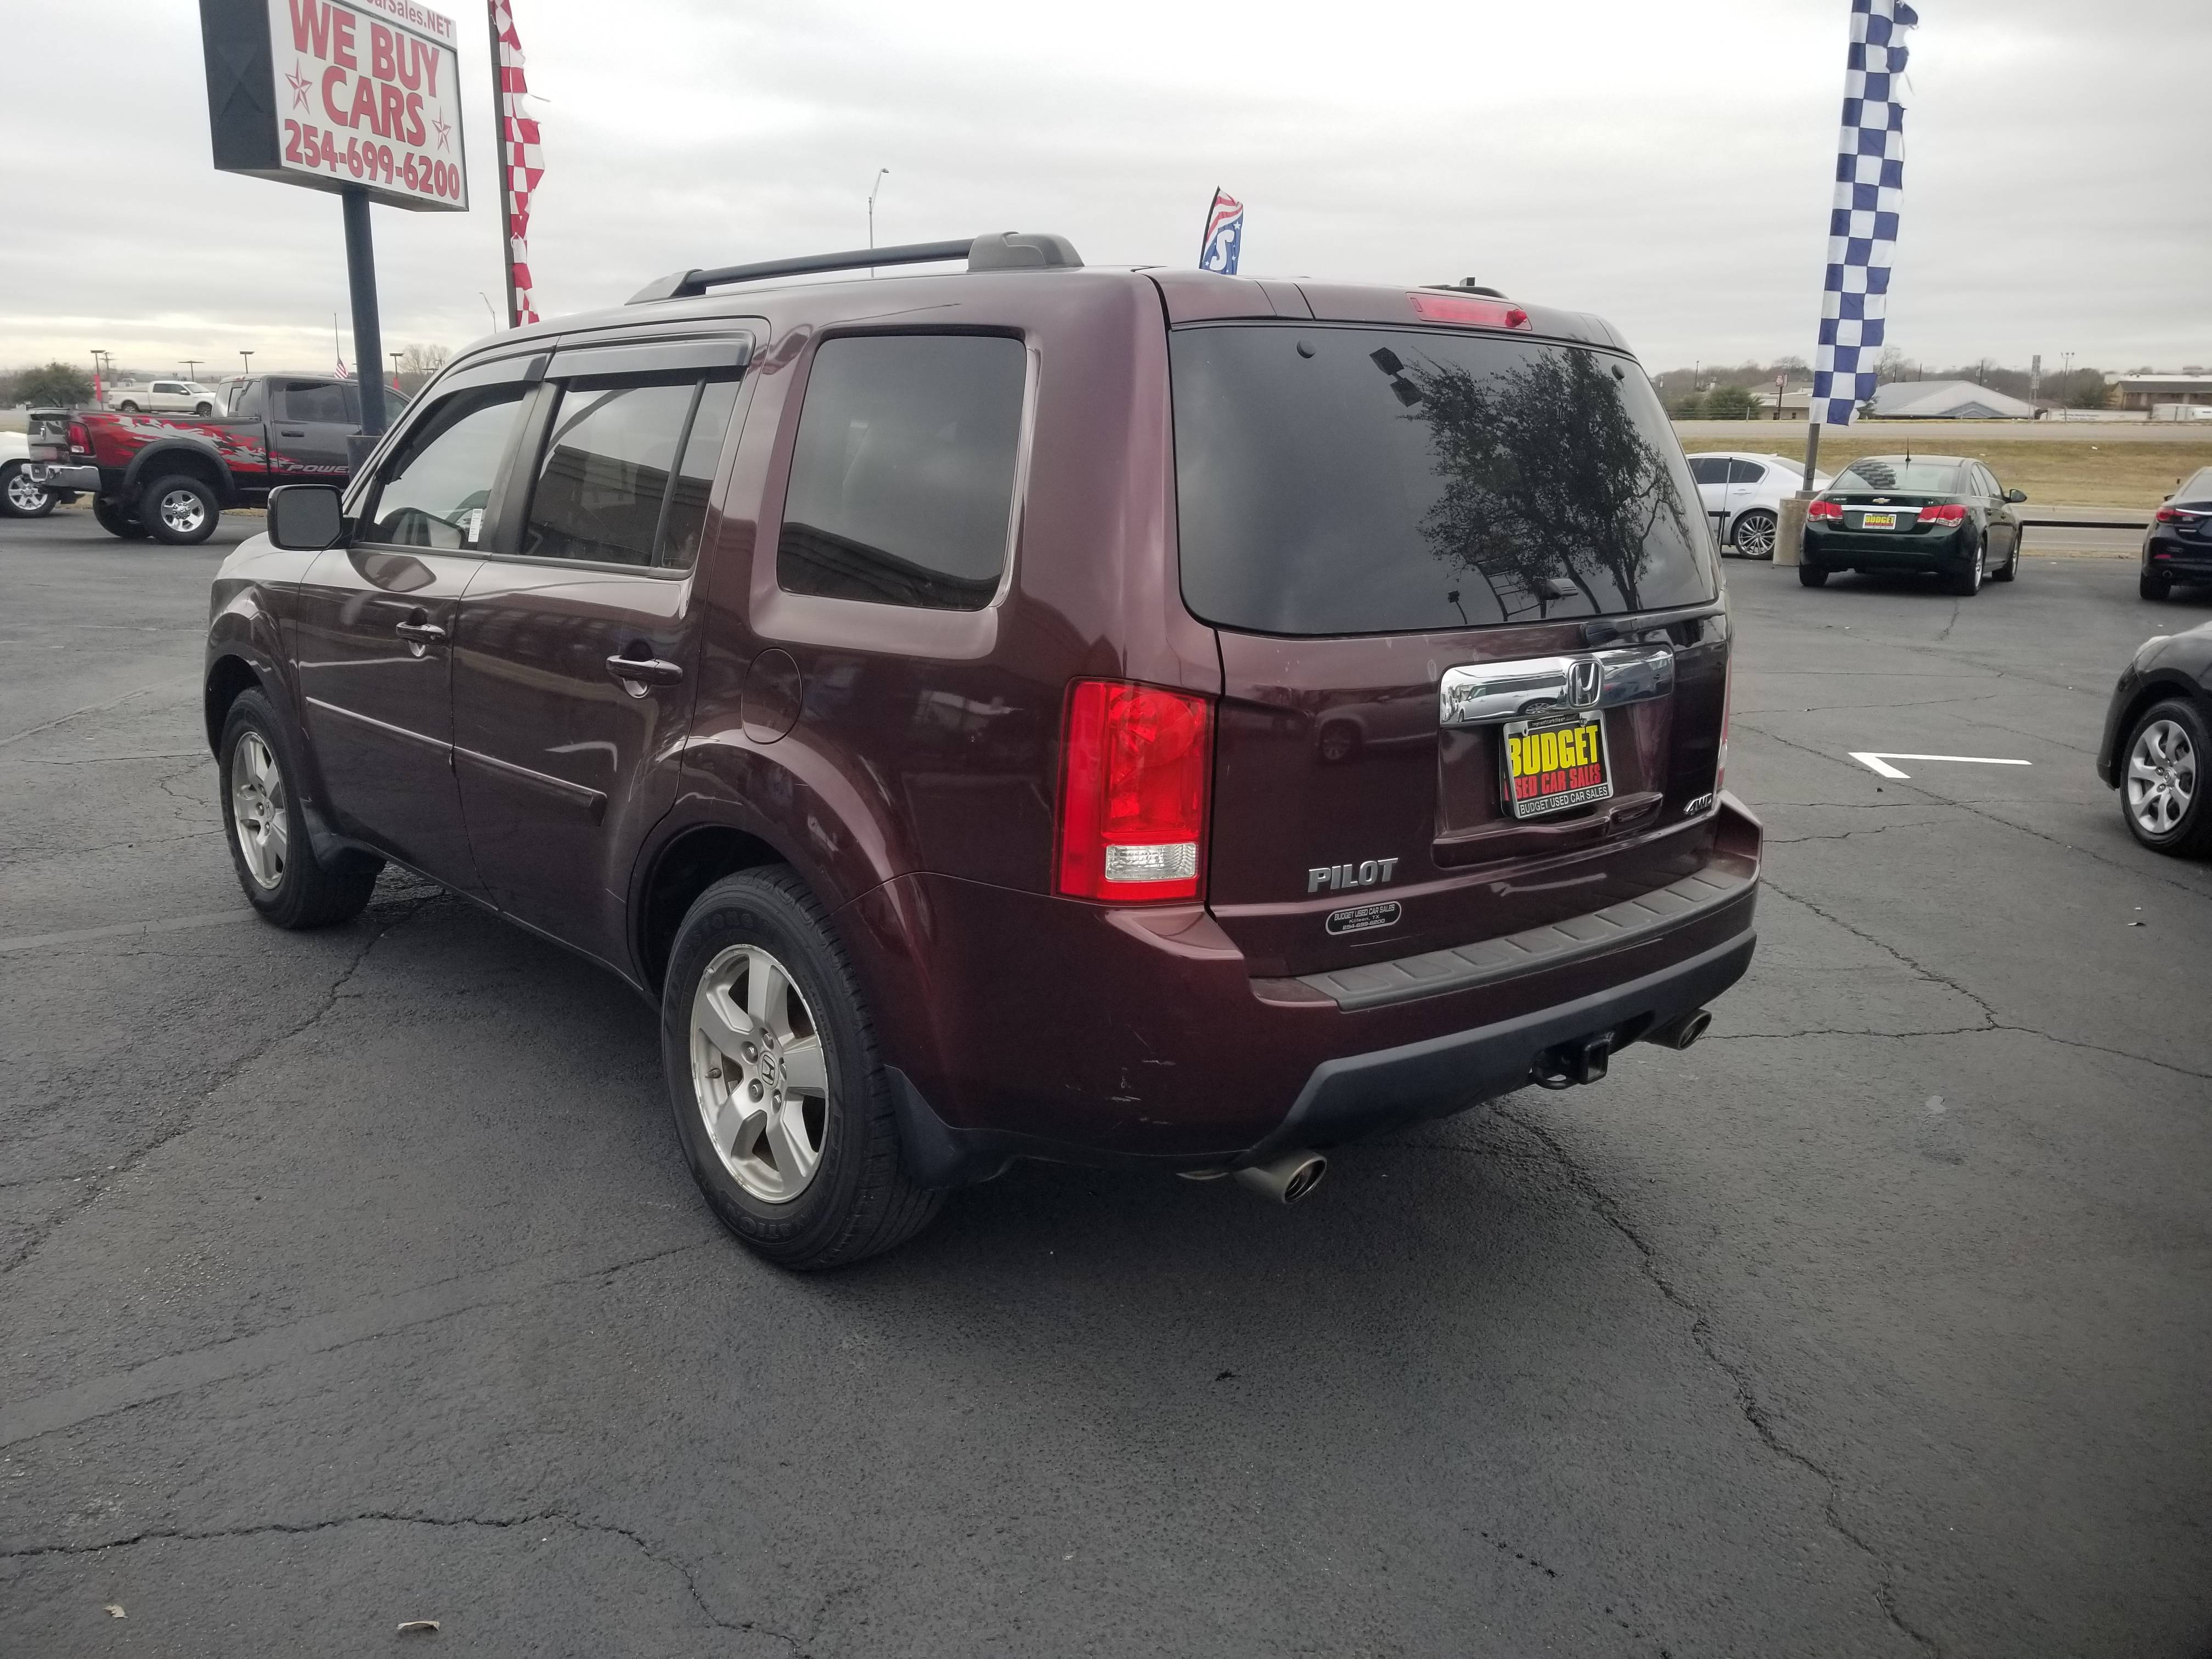 used vehicle - SUV HONDA PILOT 2009